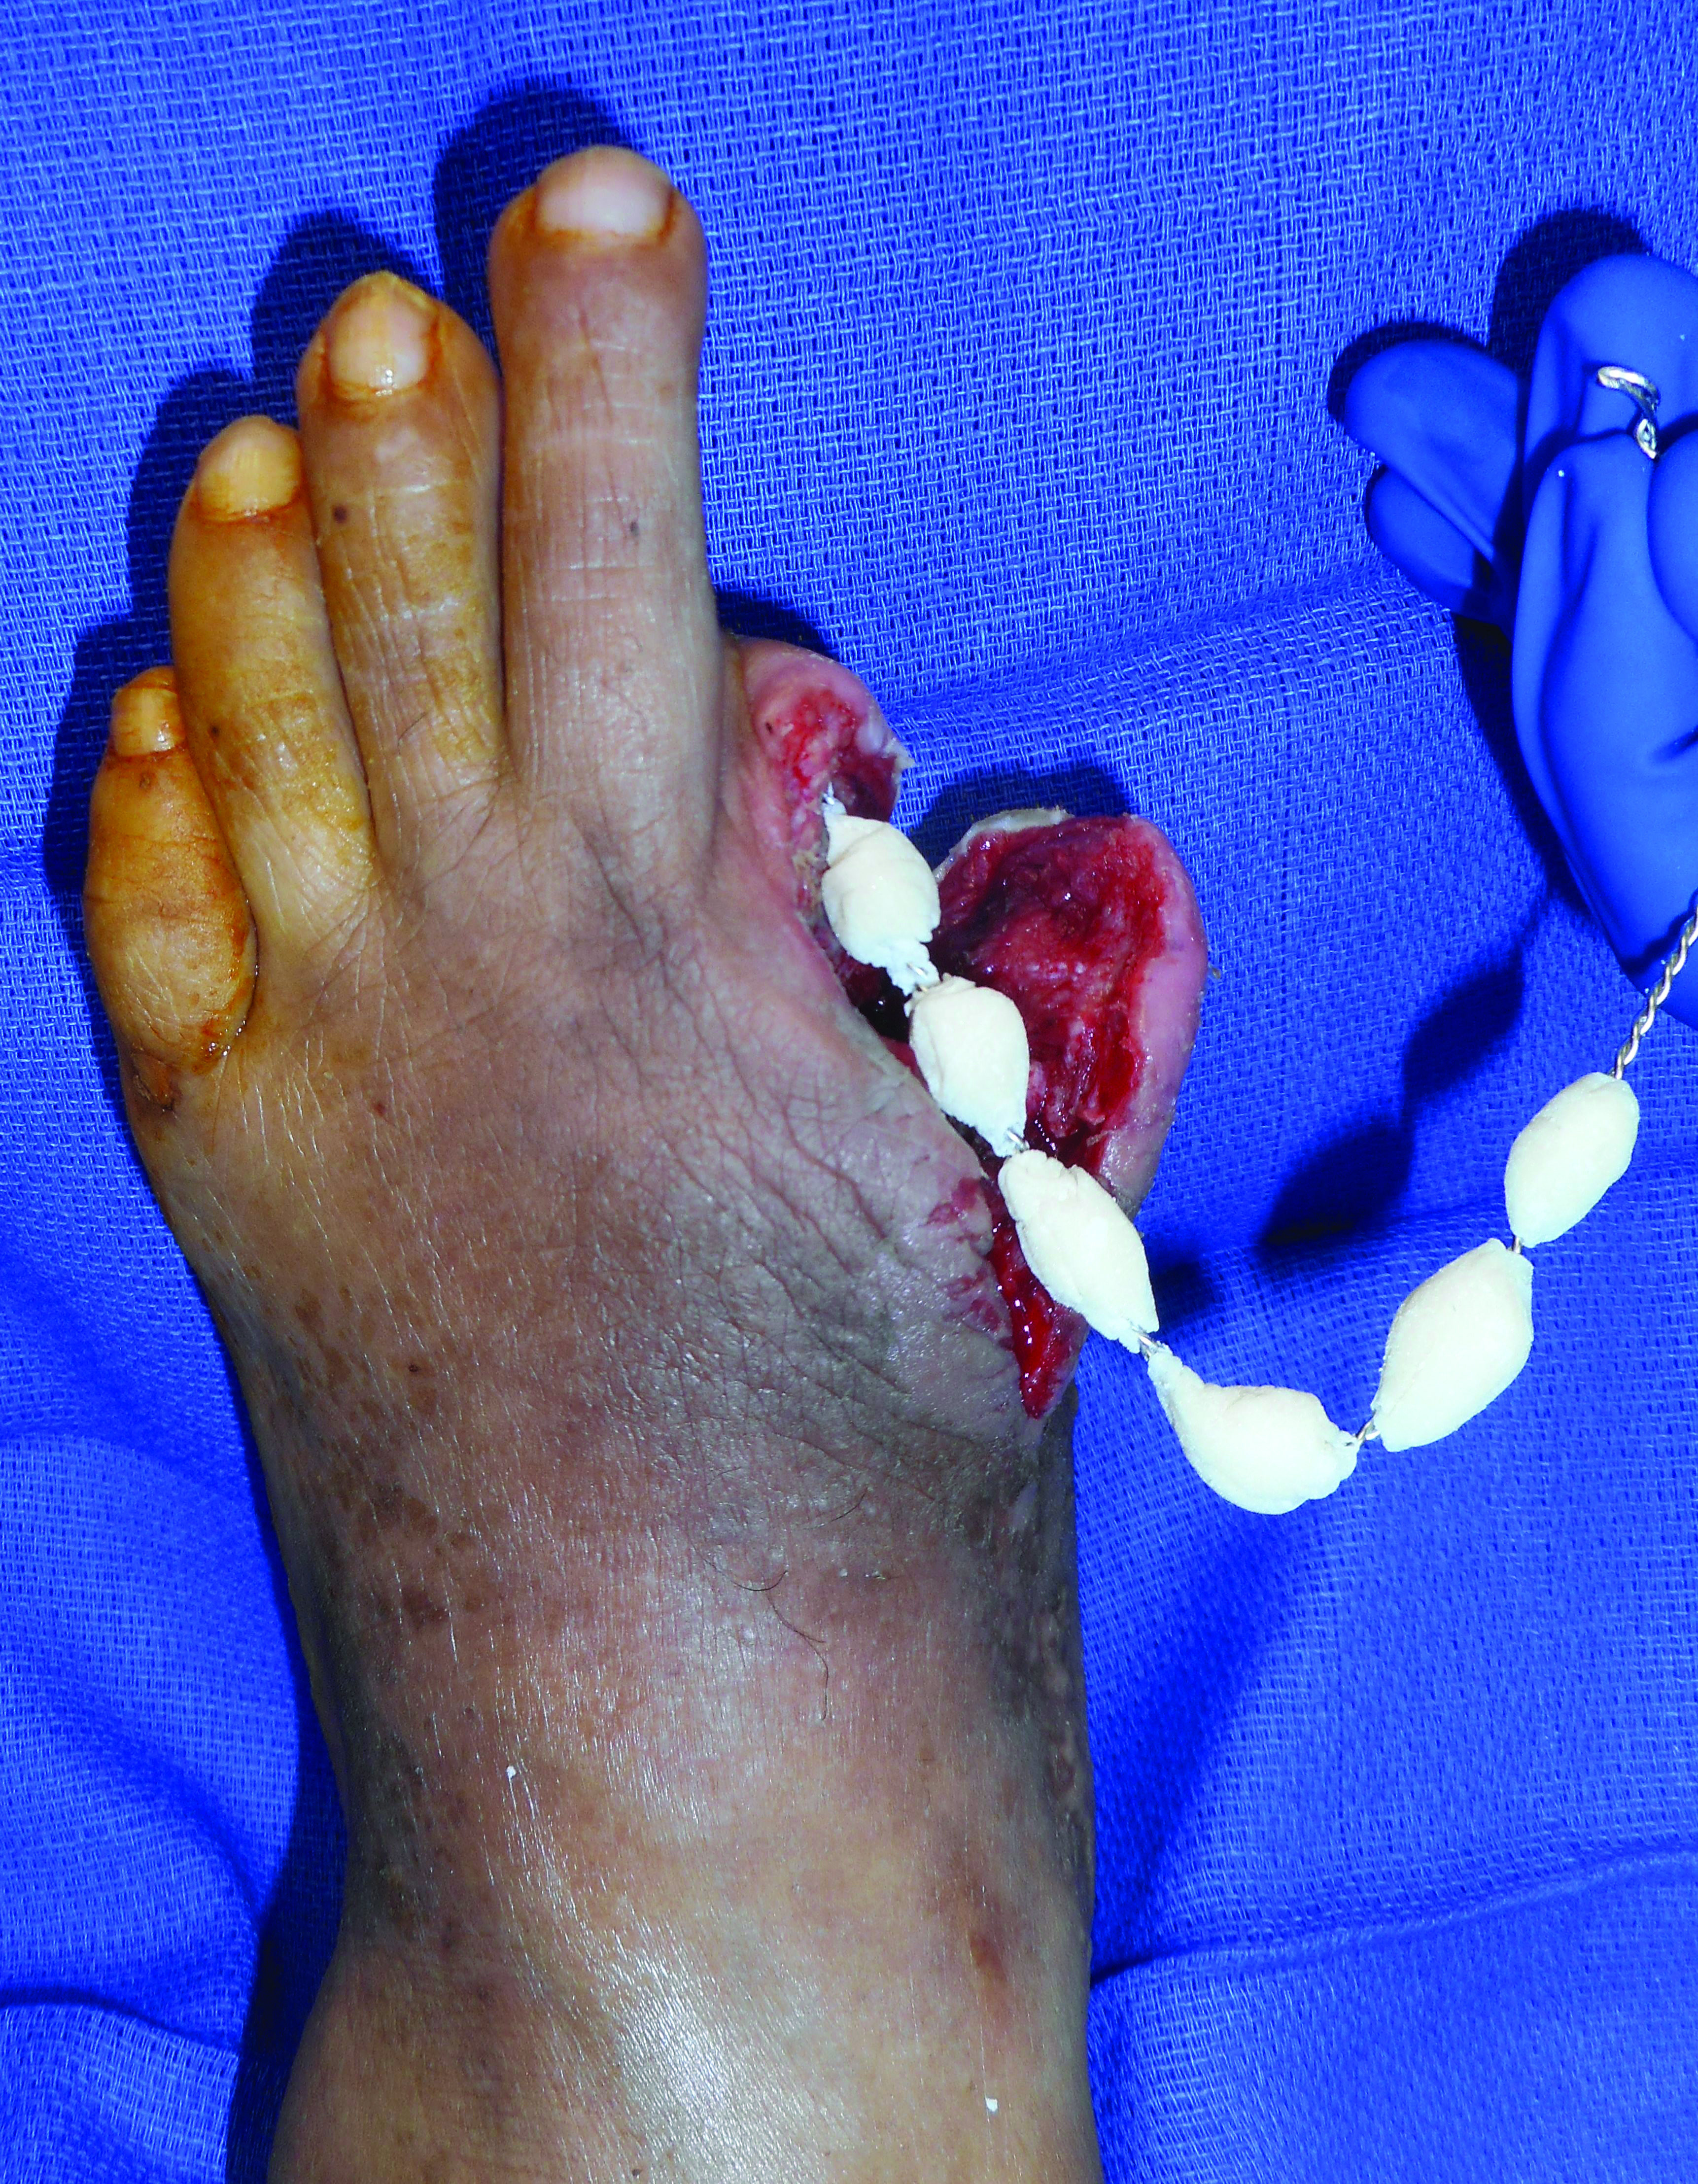 This intraoperative picture shows the application of antibiotic-loaded PMMA beads after a partial first ray amputation in the left foot.